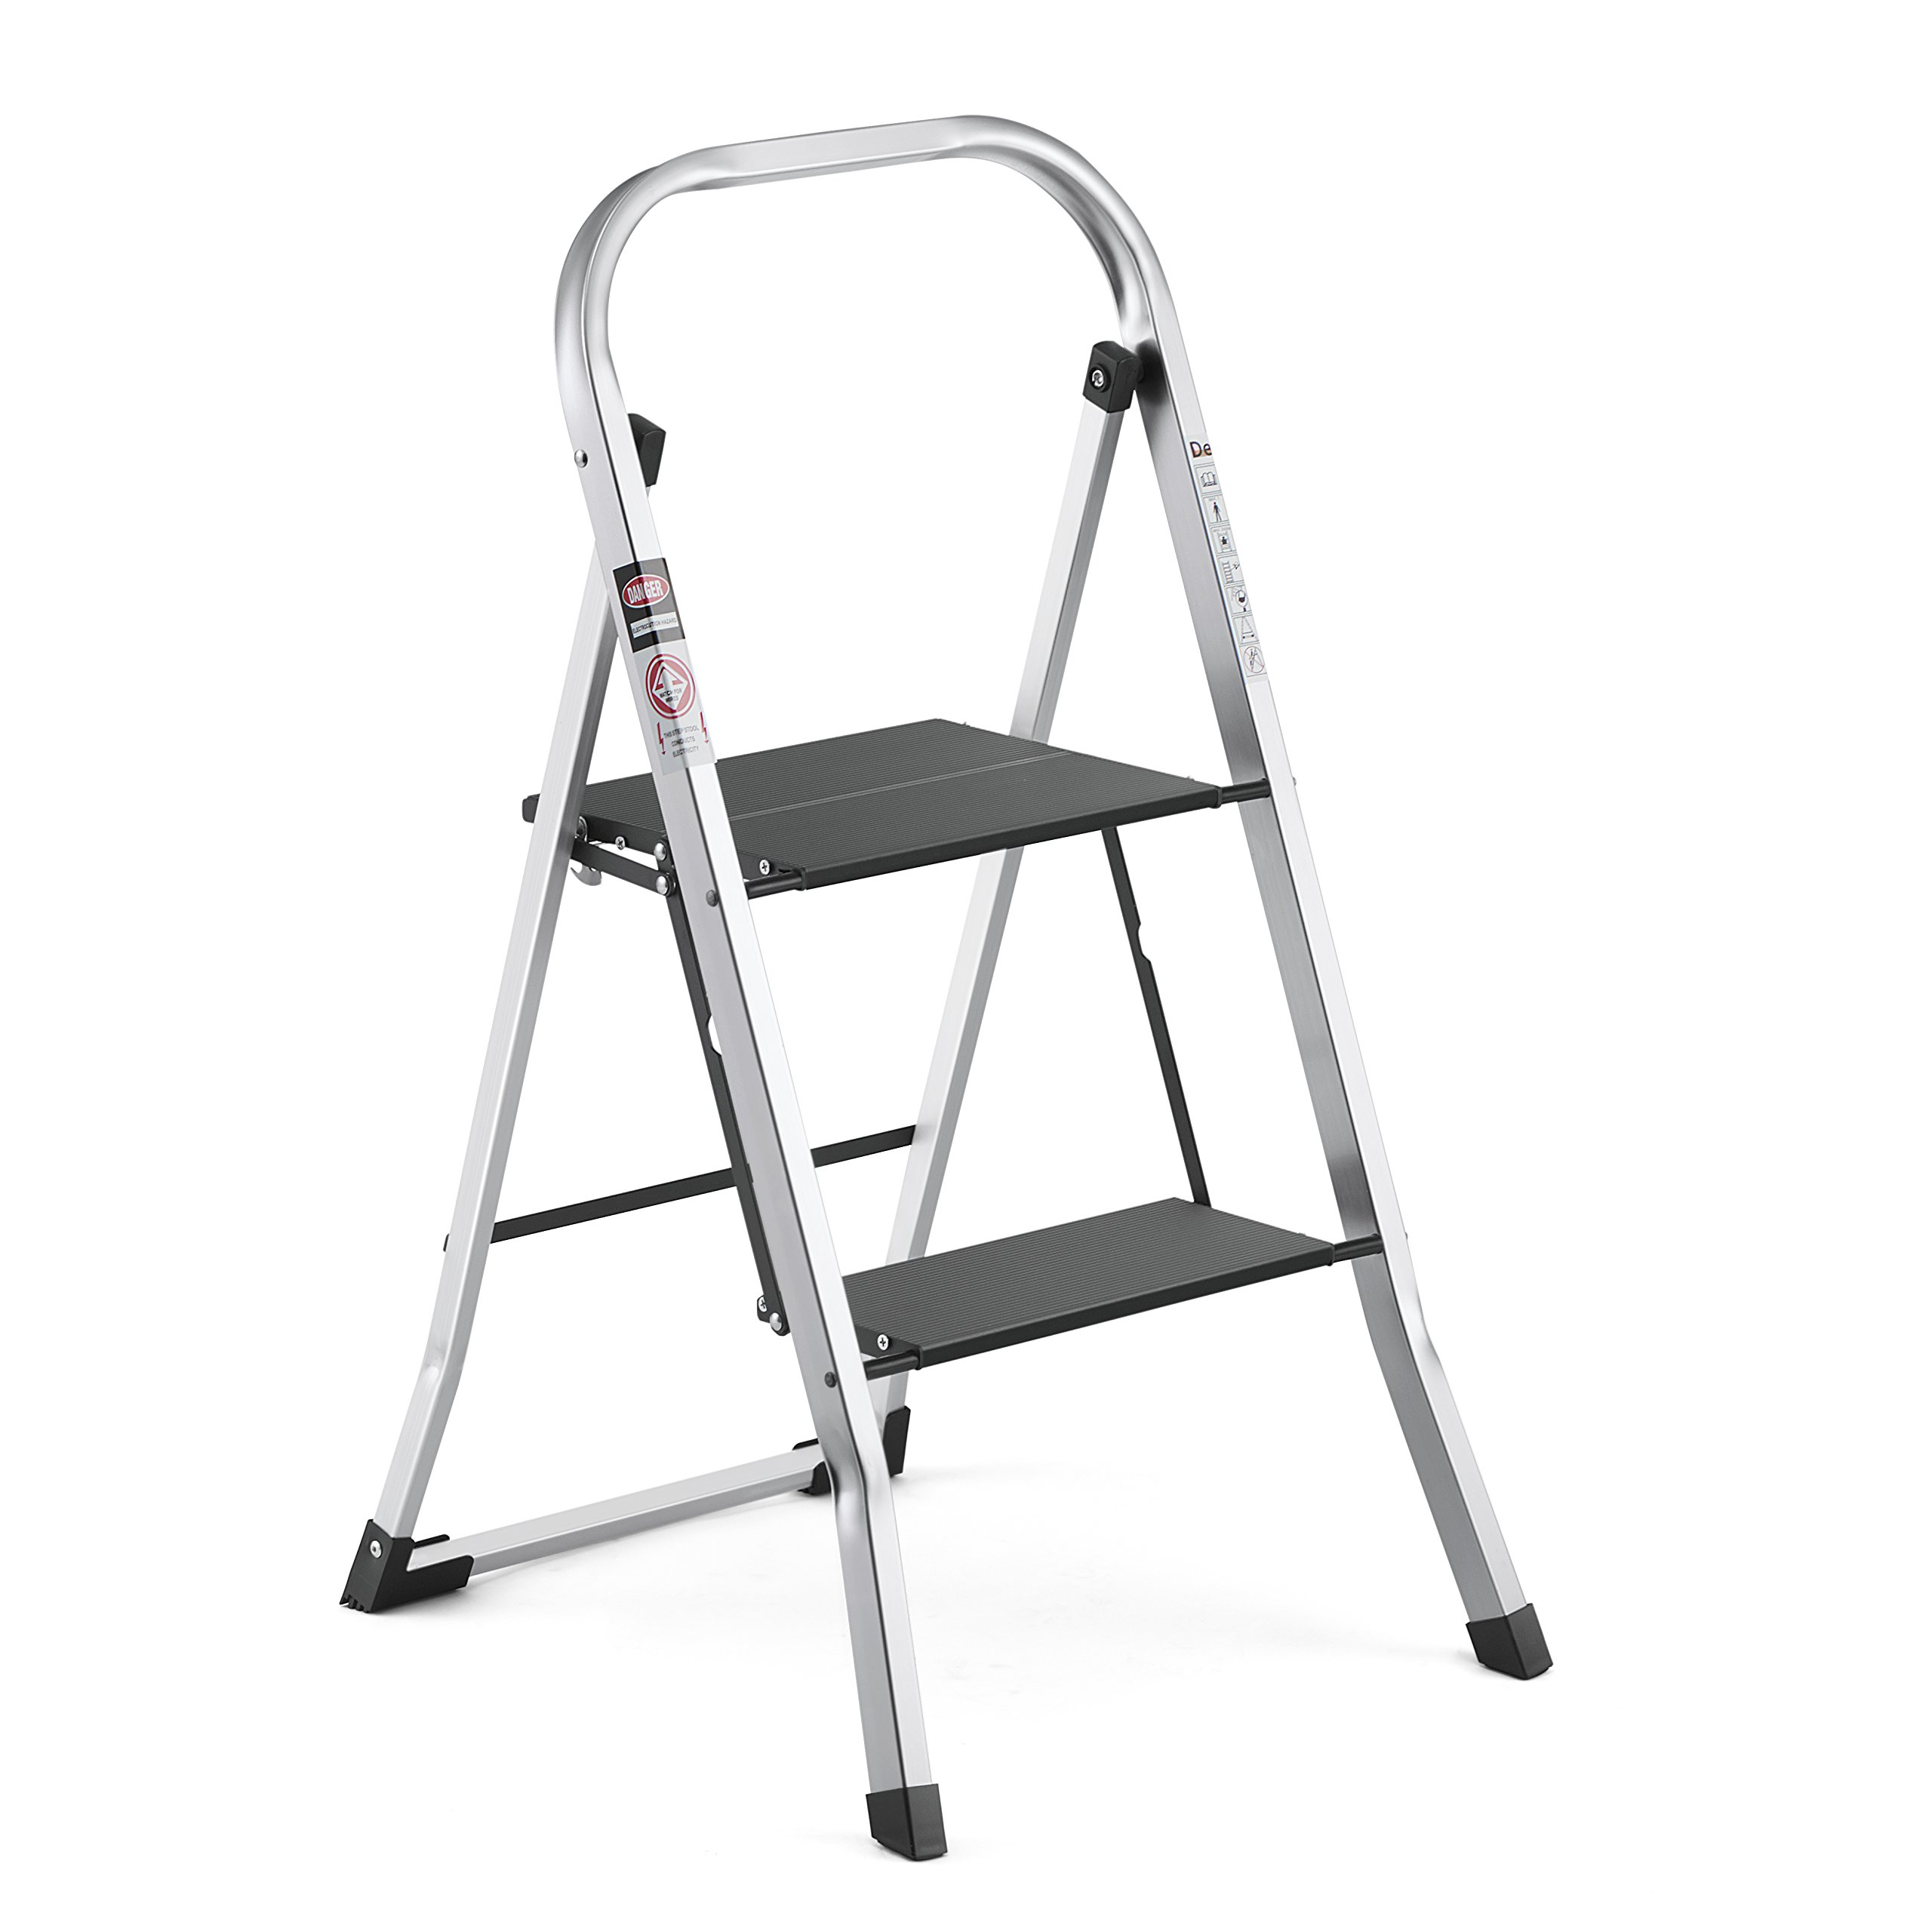 Sensational Details About Delxo Upgrade Lightweight Aluminum 2 Step Ladder Step Stool Single Hand Carry Inzonedesignstudio Interior Chair Design Inzonedesignstudiocom